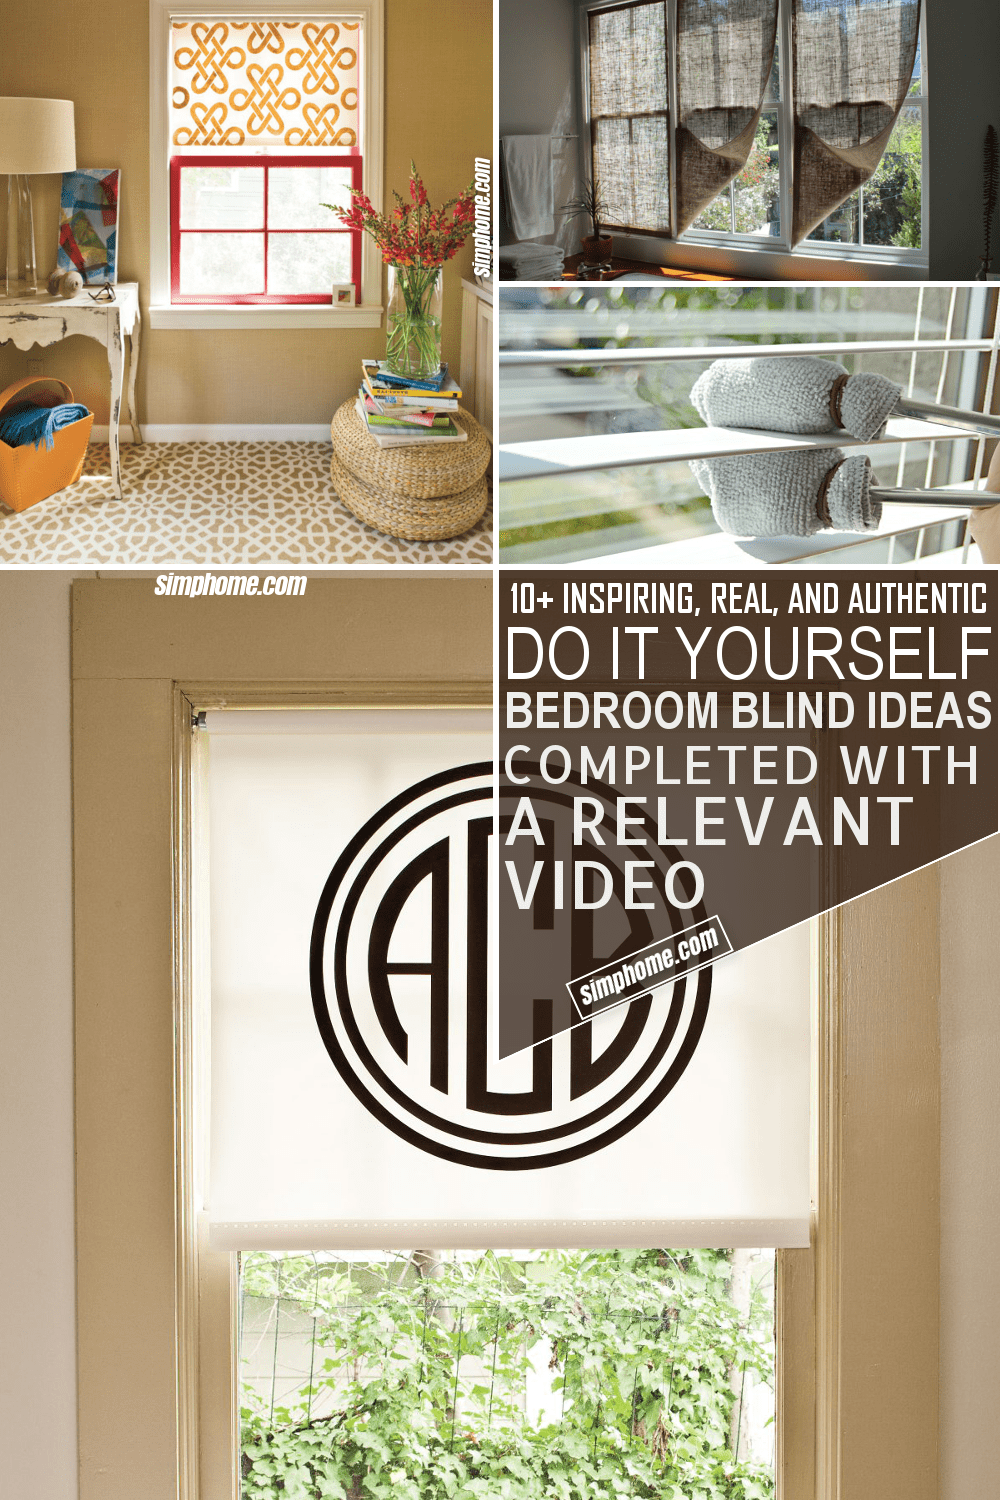 10 DIY Bedroom Blind Ideas via Simphome.com